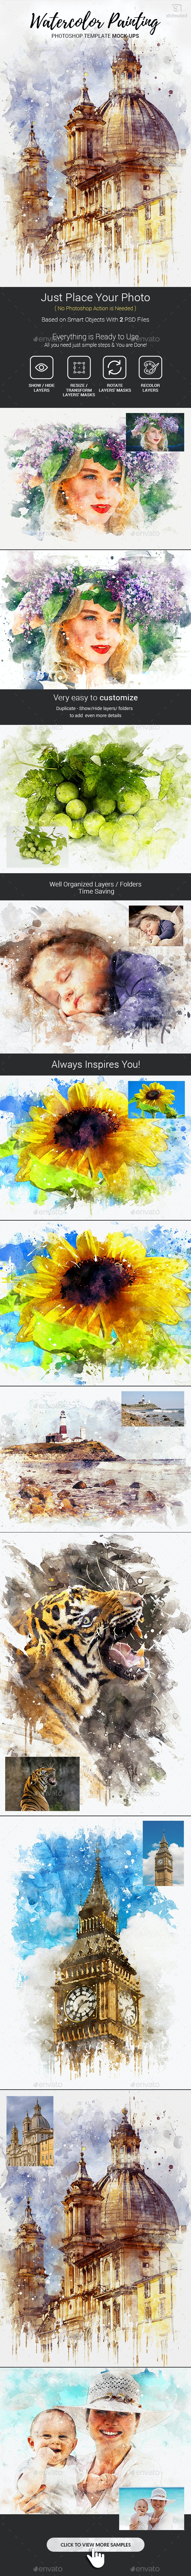 Amazing Watercolor Painting Art Photoshop Templates Mock-Ups - Photo Templates Graphics